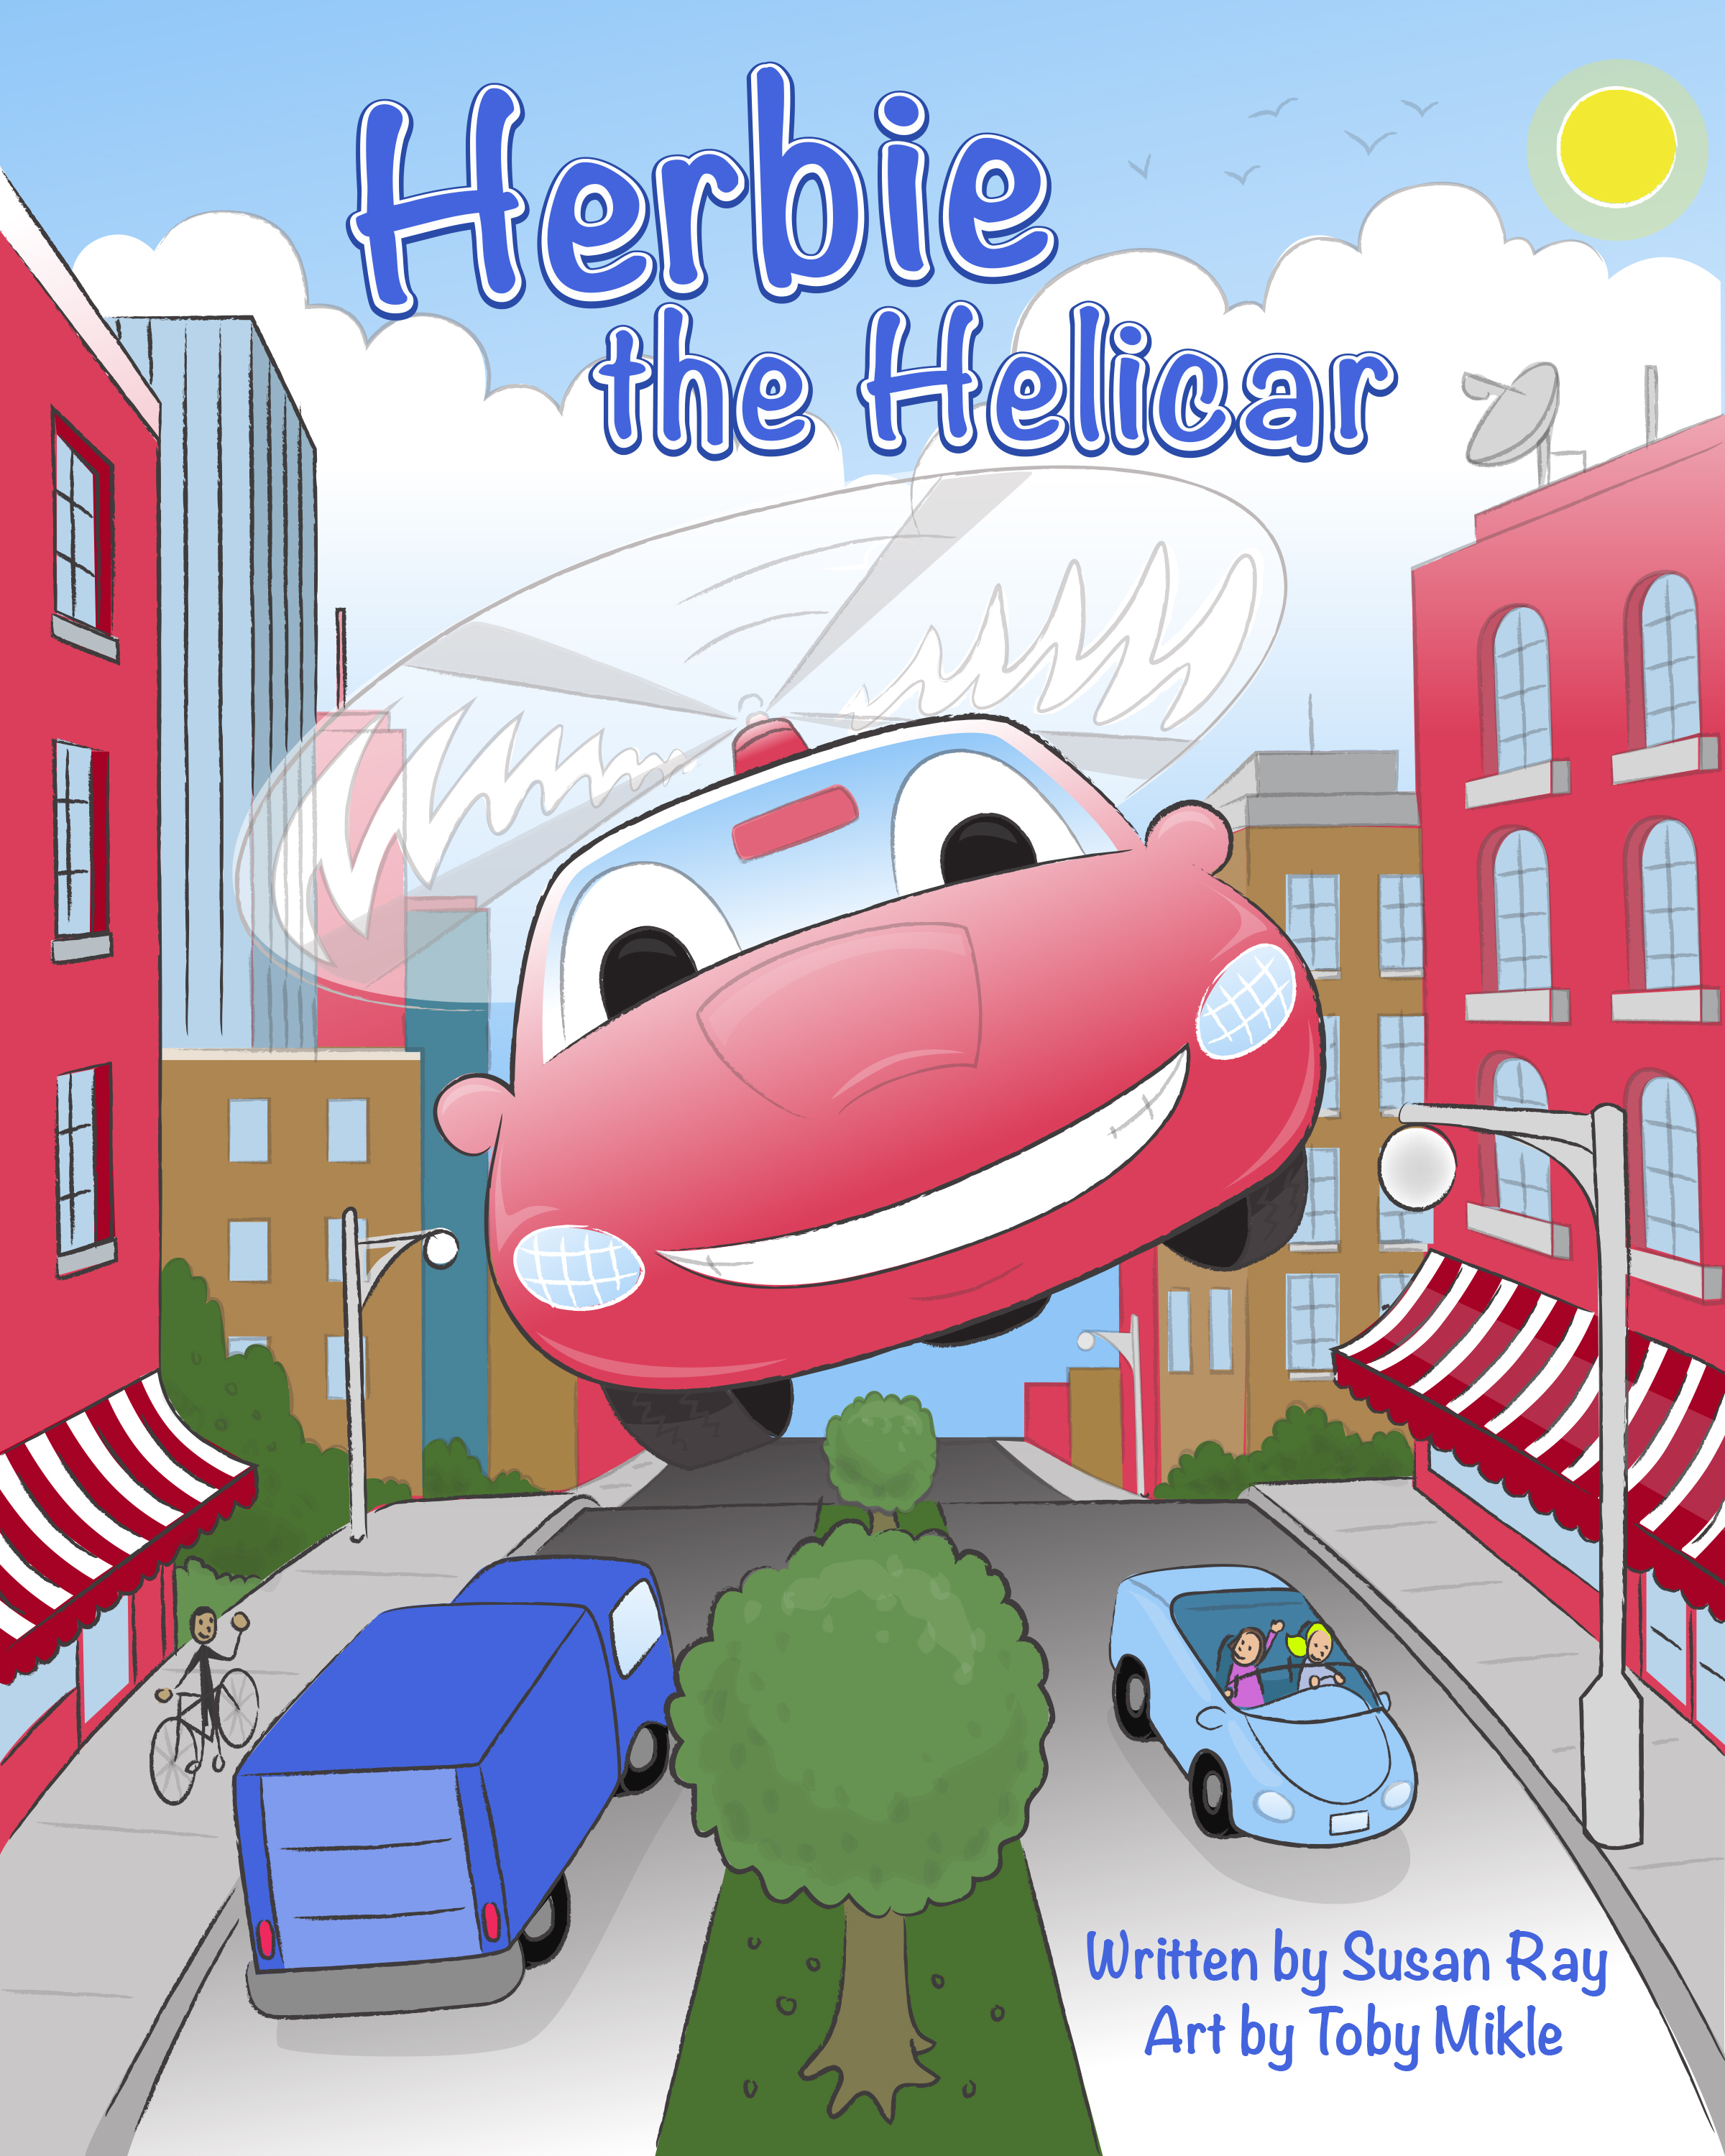 This is a custom book cover about Herbie the flying car can be edited and scaled for any publishing or print use